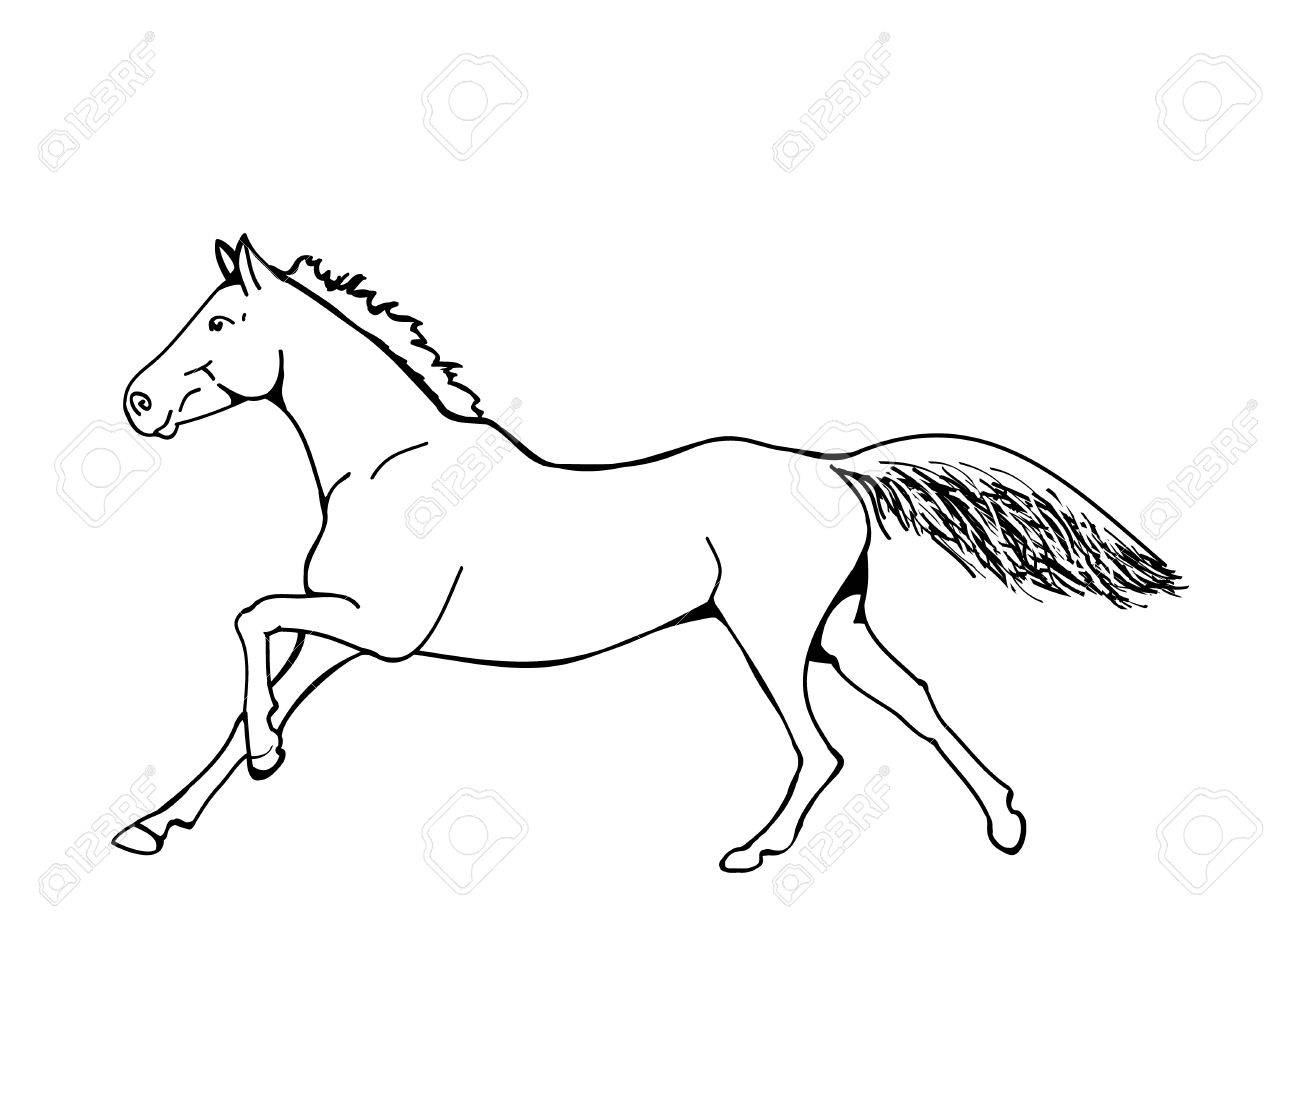 1300x1106 Graphic Image Of A Galloping Horse. The Outline Of A Horse